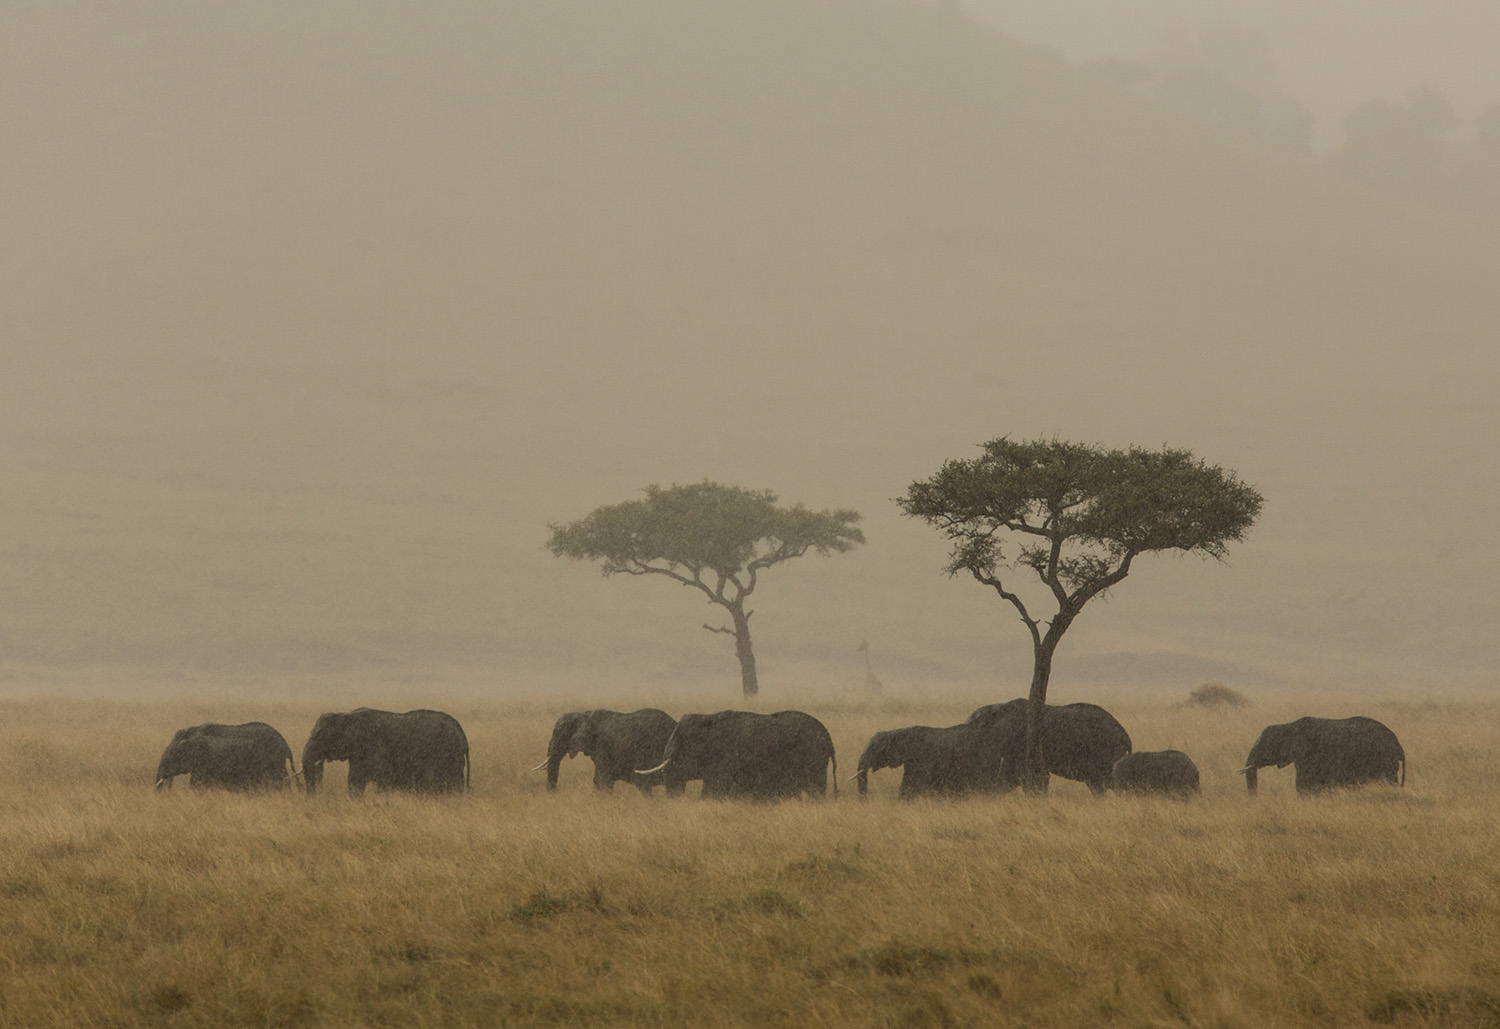 Elephants in a herd in Kenya's Maasai Mara